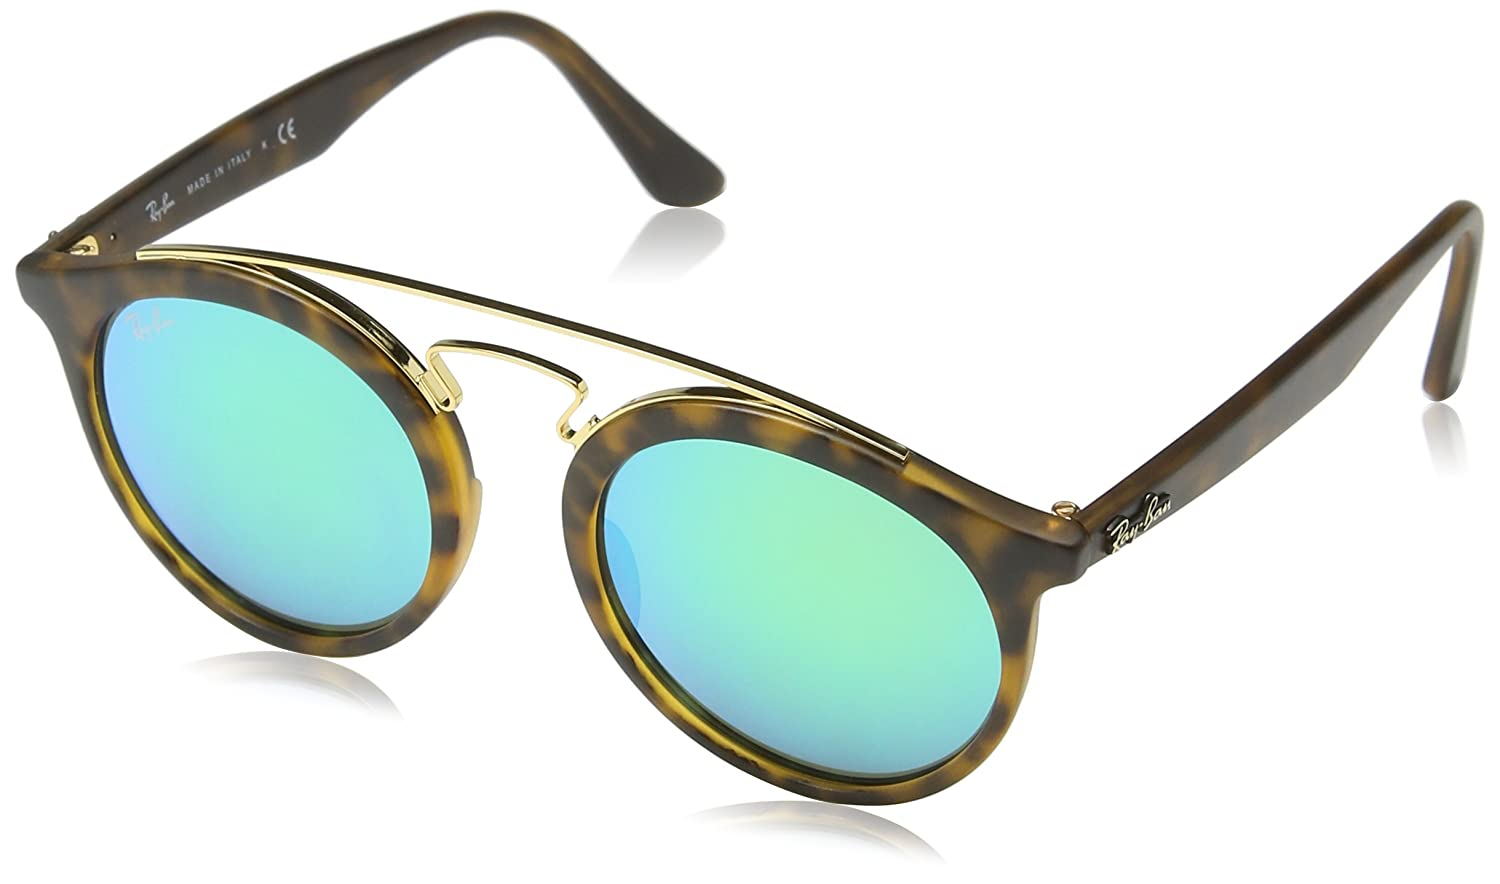 Ray-ban RB4256 Sonnenbrille 49 mm